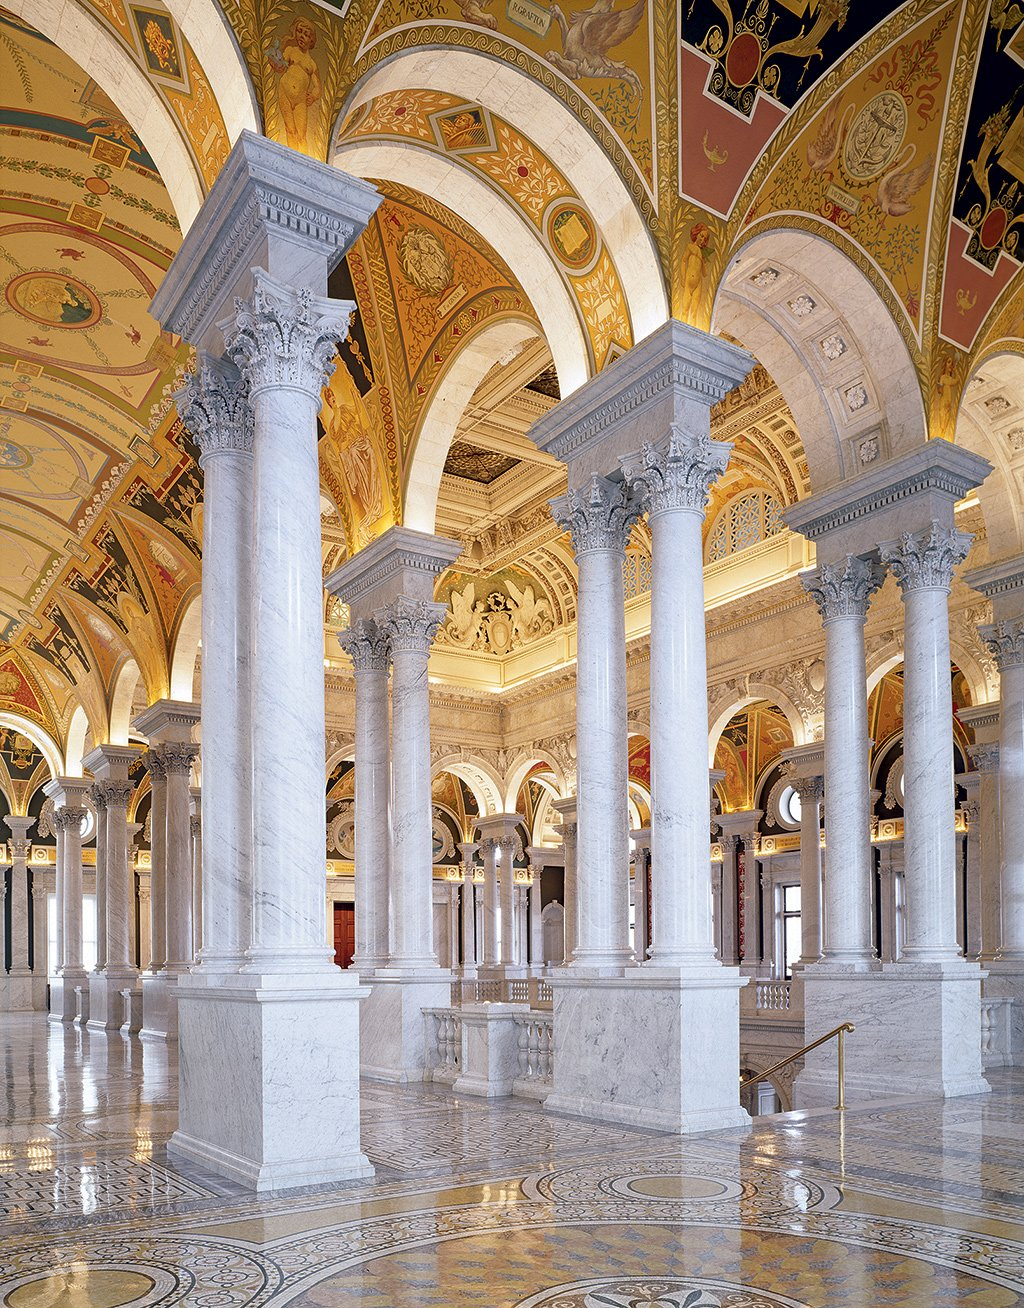 Soaring columns and exquisite marble floors make the Library of Congress especially photo-worthy. Photo by Carol M. Highsmith.